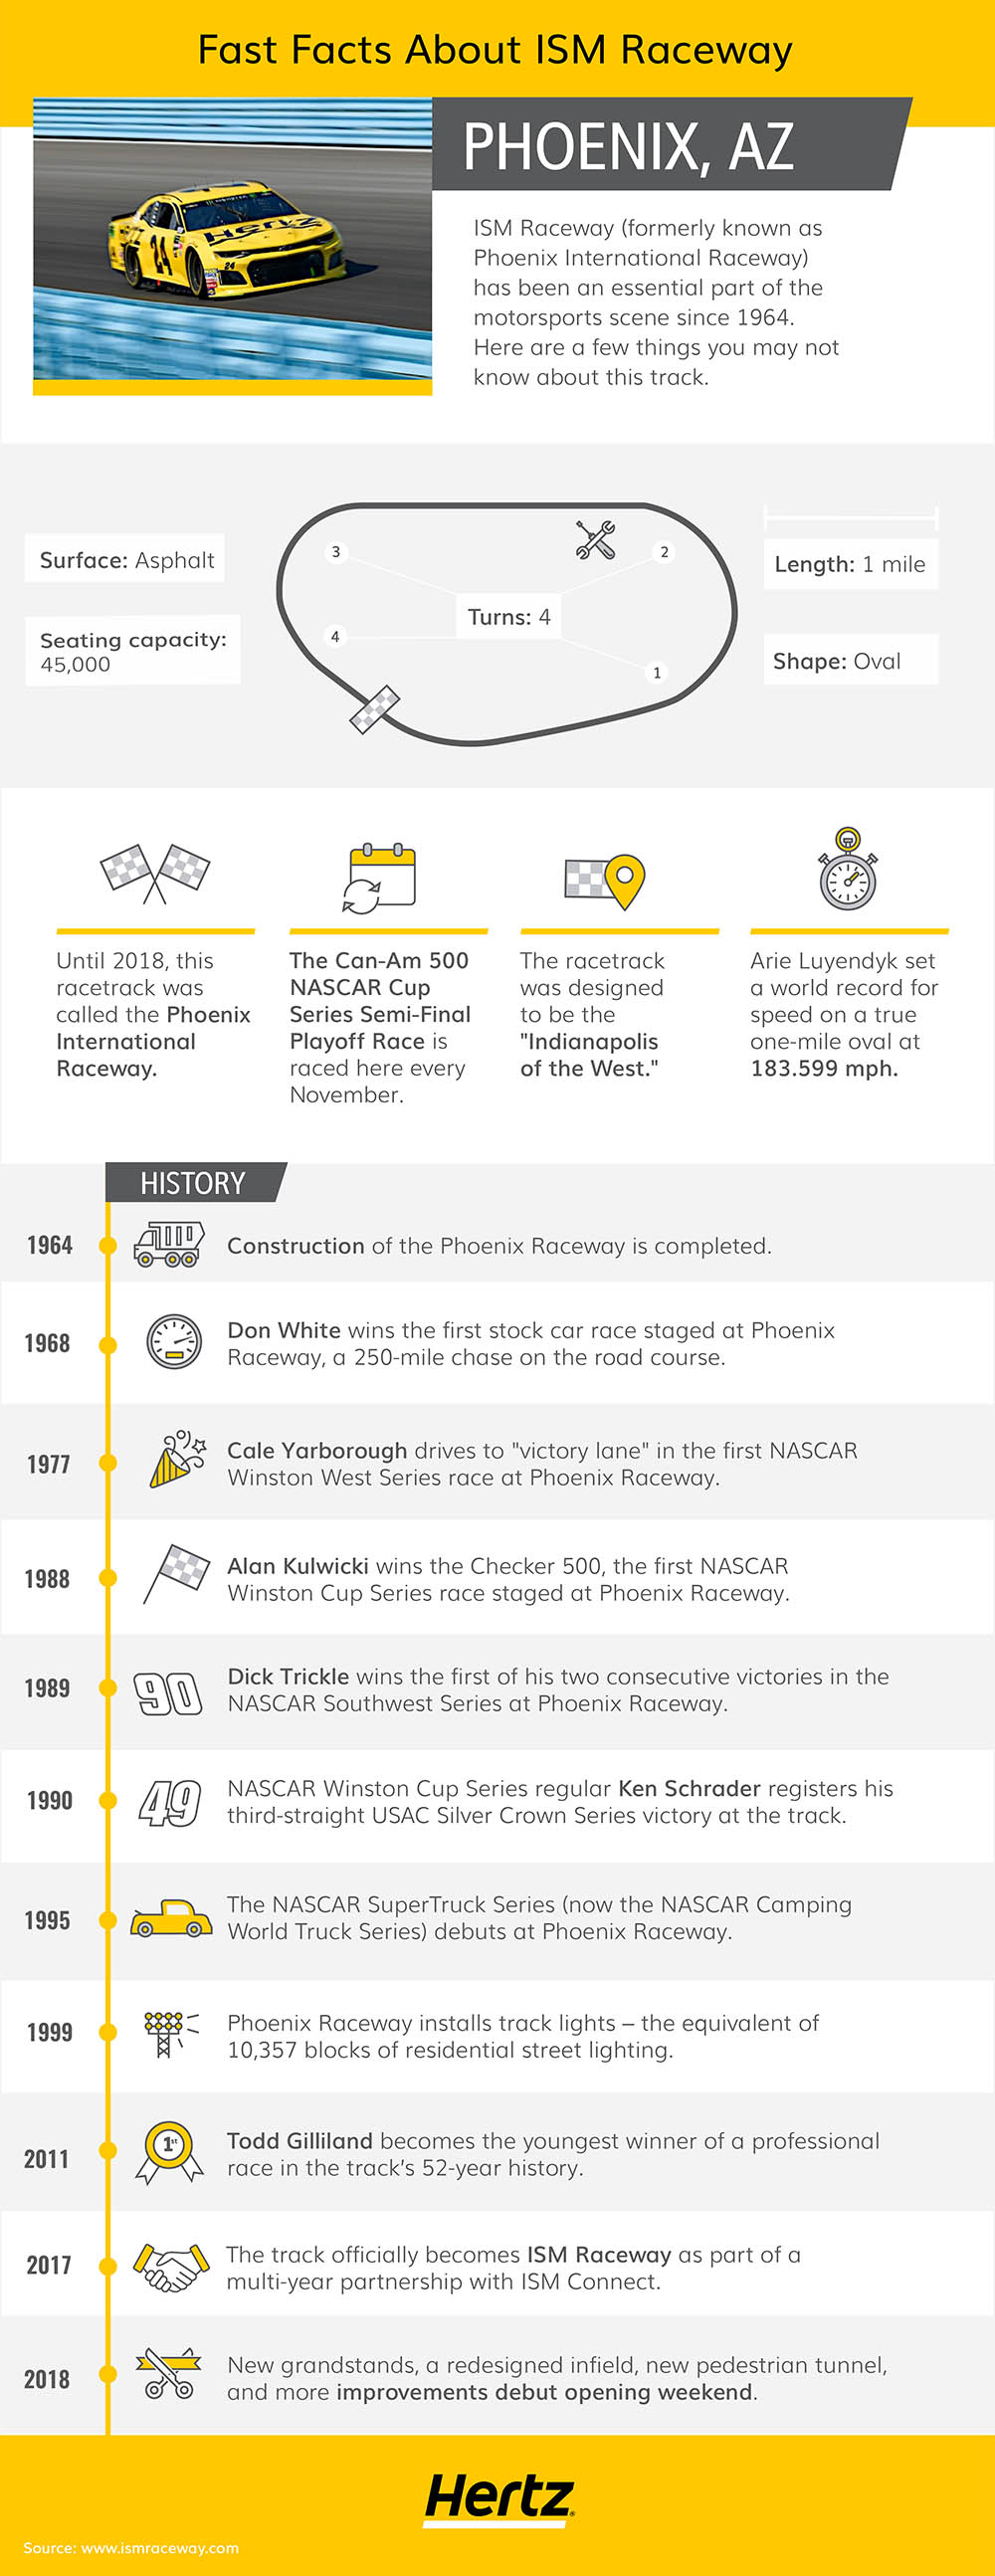 ISM Raceway infographic featuring various statistics about the history and logistics of this racetrack.